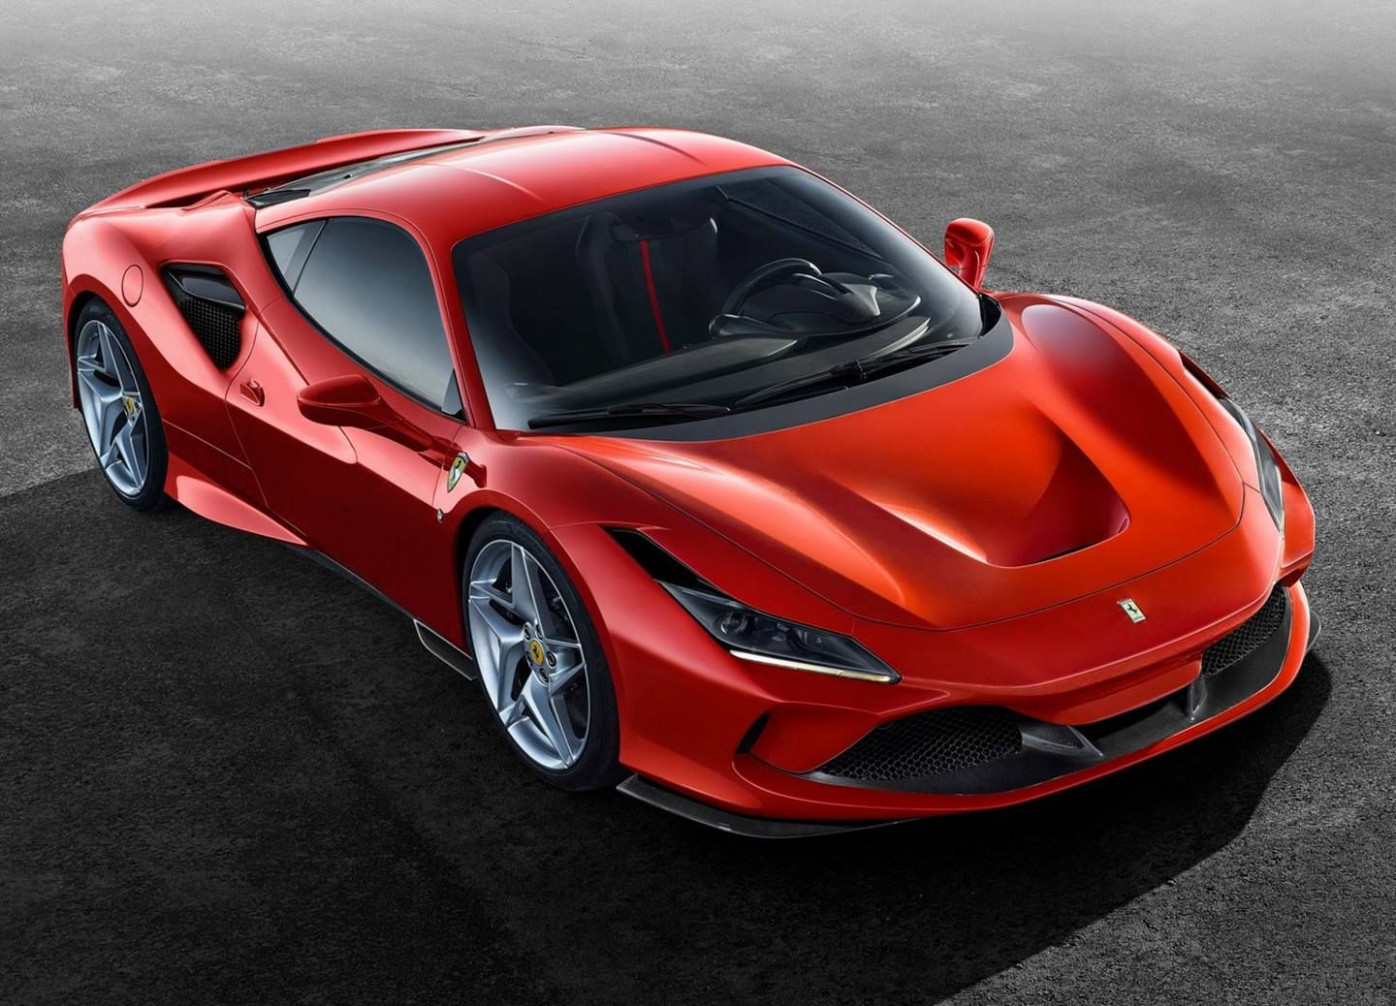 Photos Ferrari 2022 F8 Tributo Price